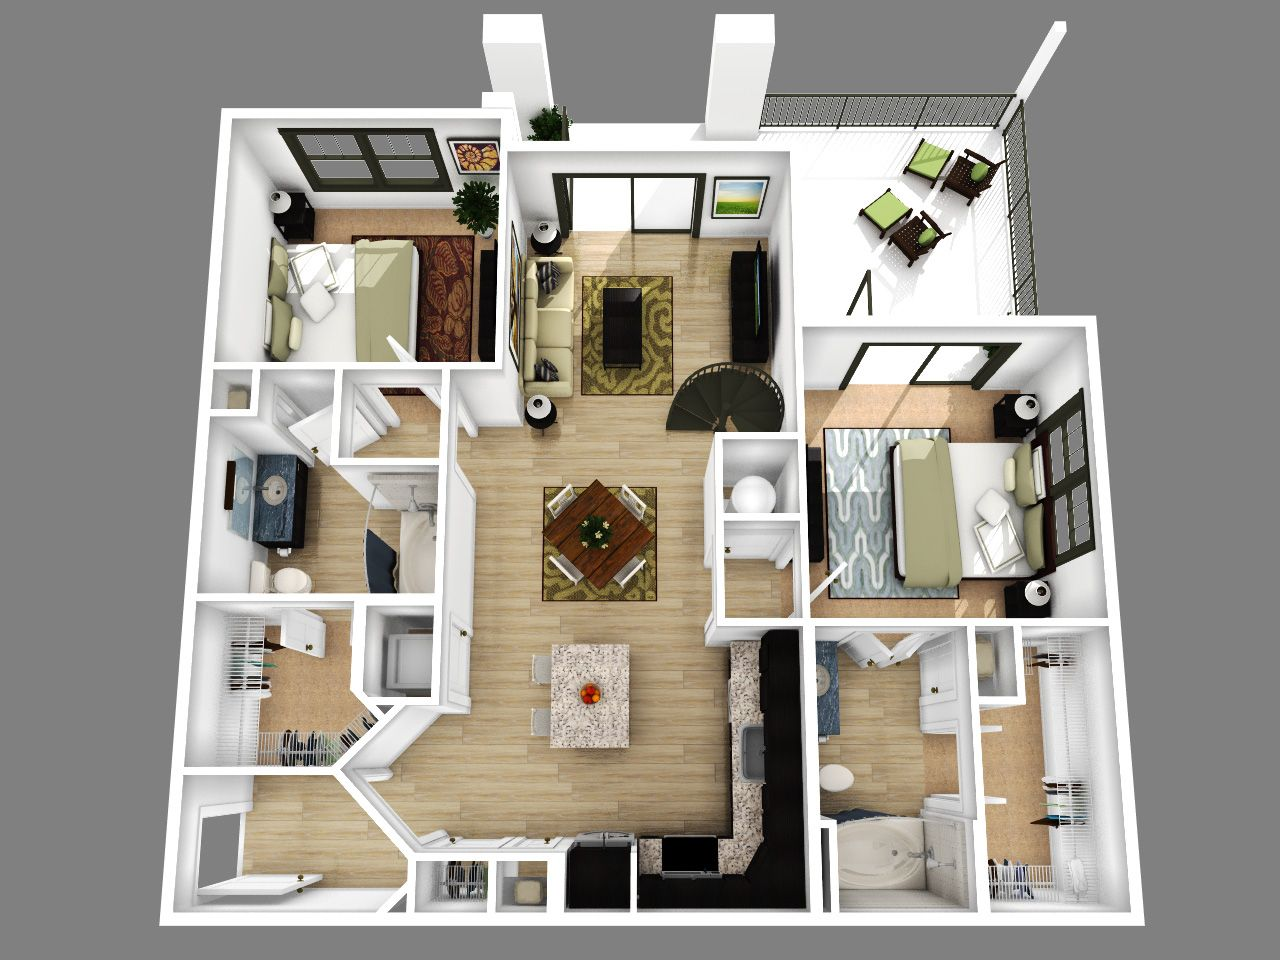 2 Bedroom Apartment Design Plans 2 bedroom apartment floor plans 3d amazing decoration 416118